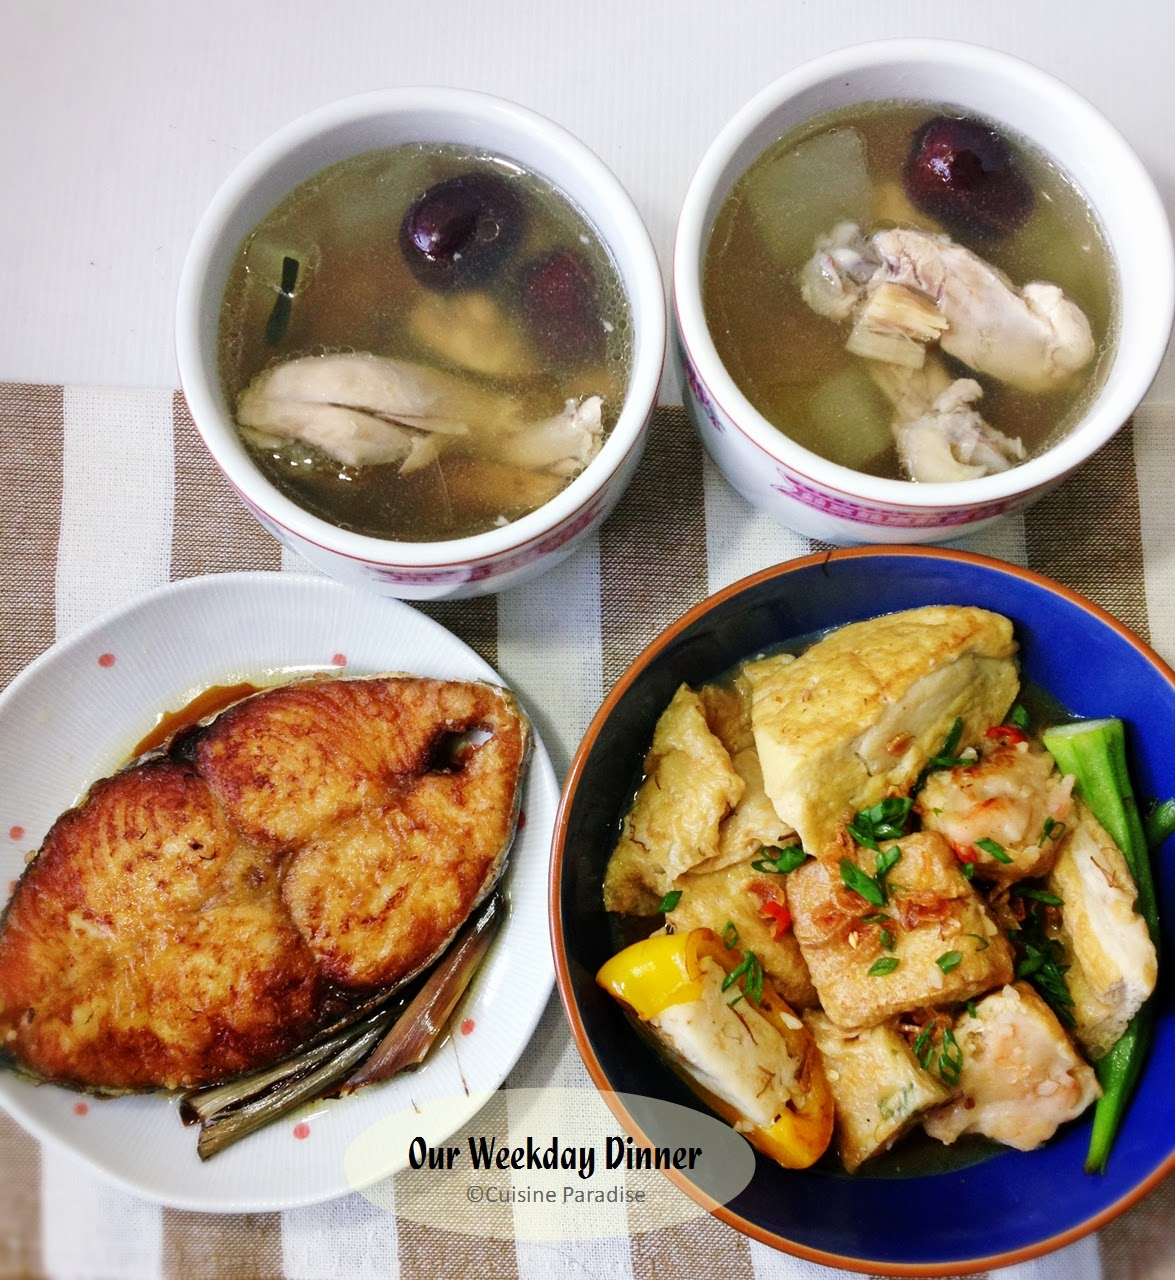 Cuisine paradise singapore food blog recipes reviews and travel weekly meal planner double boiled winter melon soup and pan fried batang fish forumfinder Choice Image